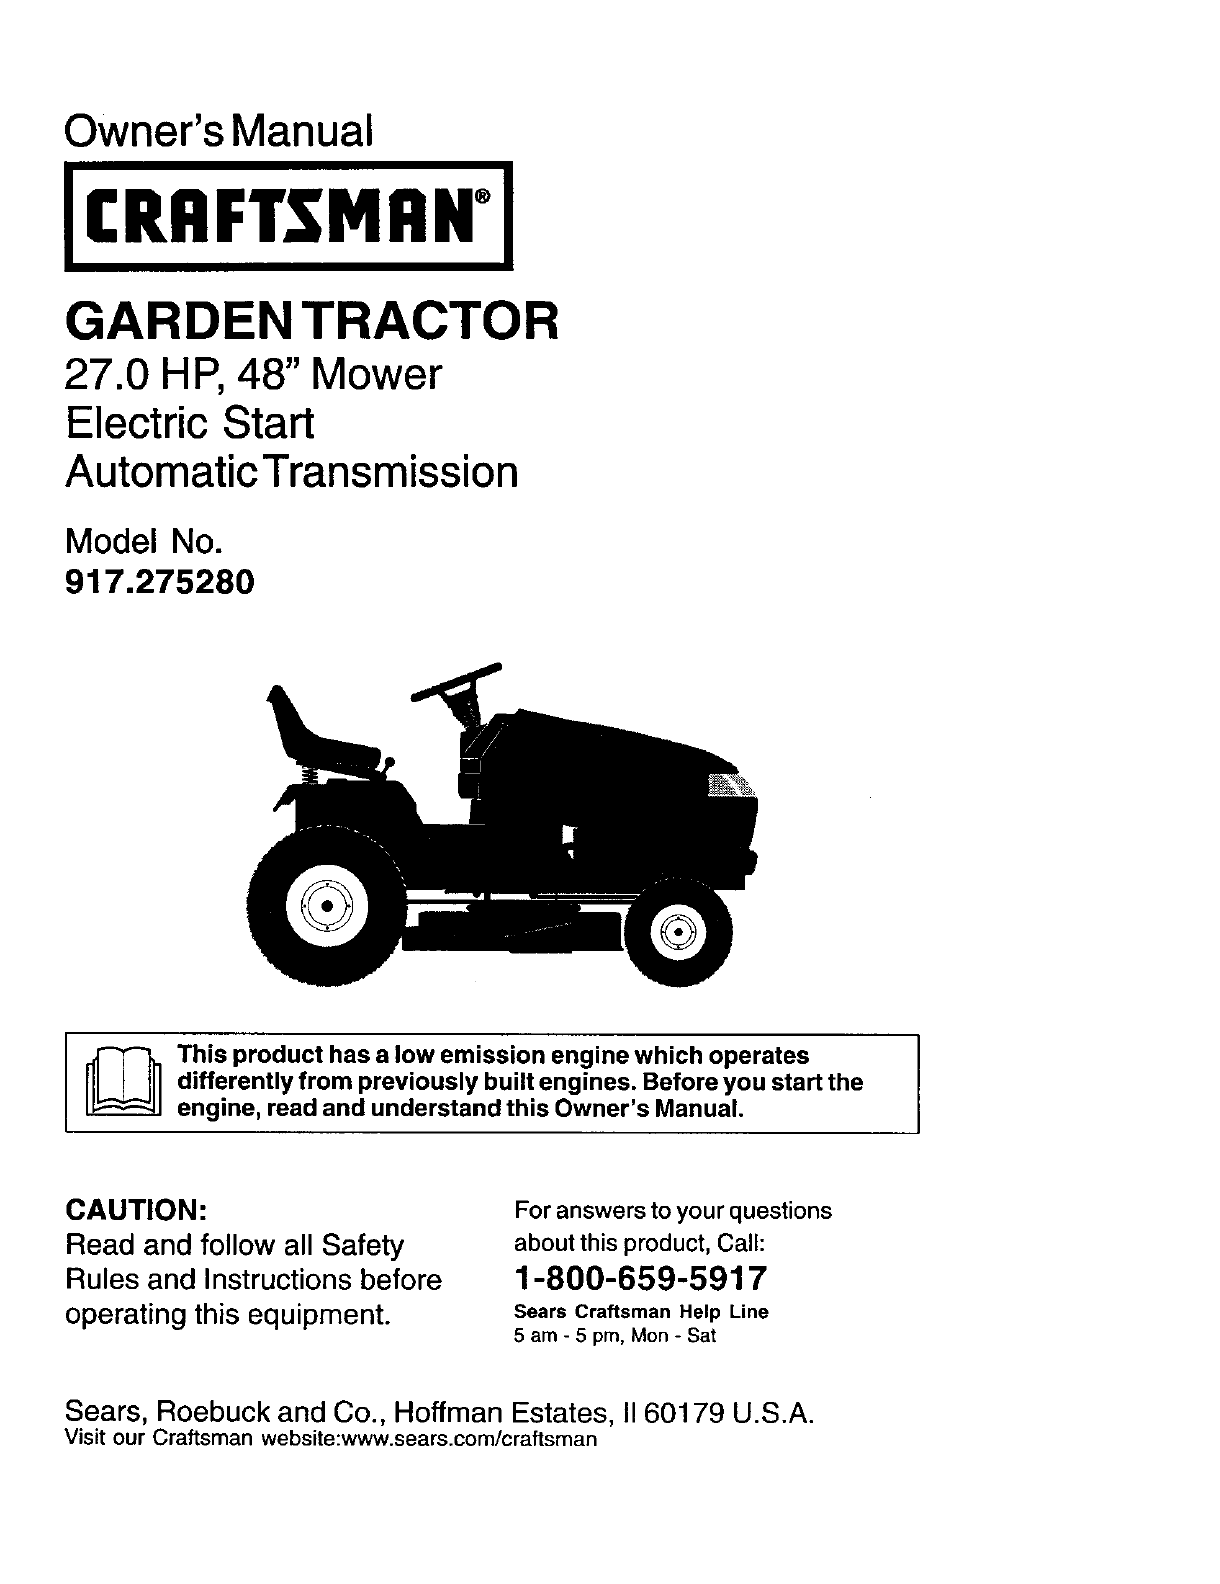 hight resolution of craftsman lawn mower 917 27528 user guide